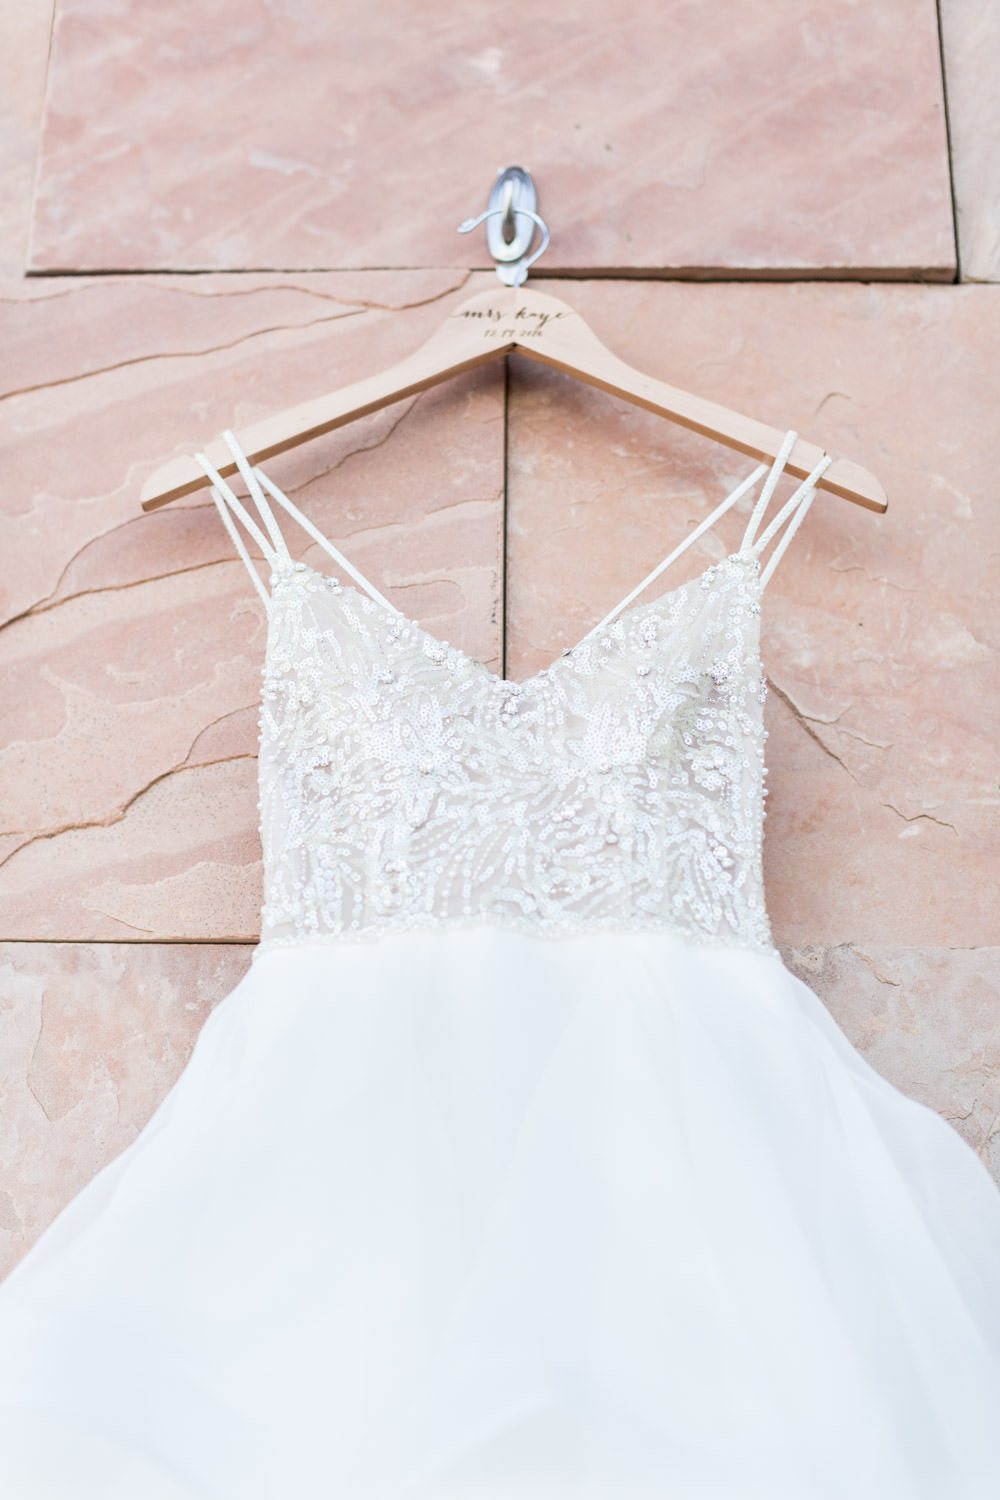 Watters wedding gown with sparkles and beading with tulle large skirt from Couture Bride Las Vegas, Cavin Elizabeth Photography